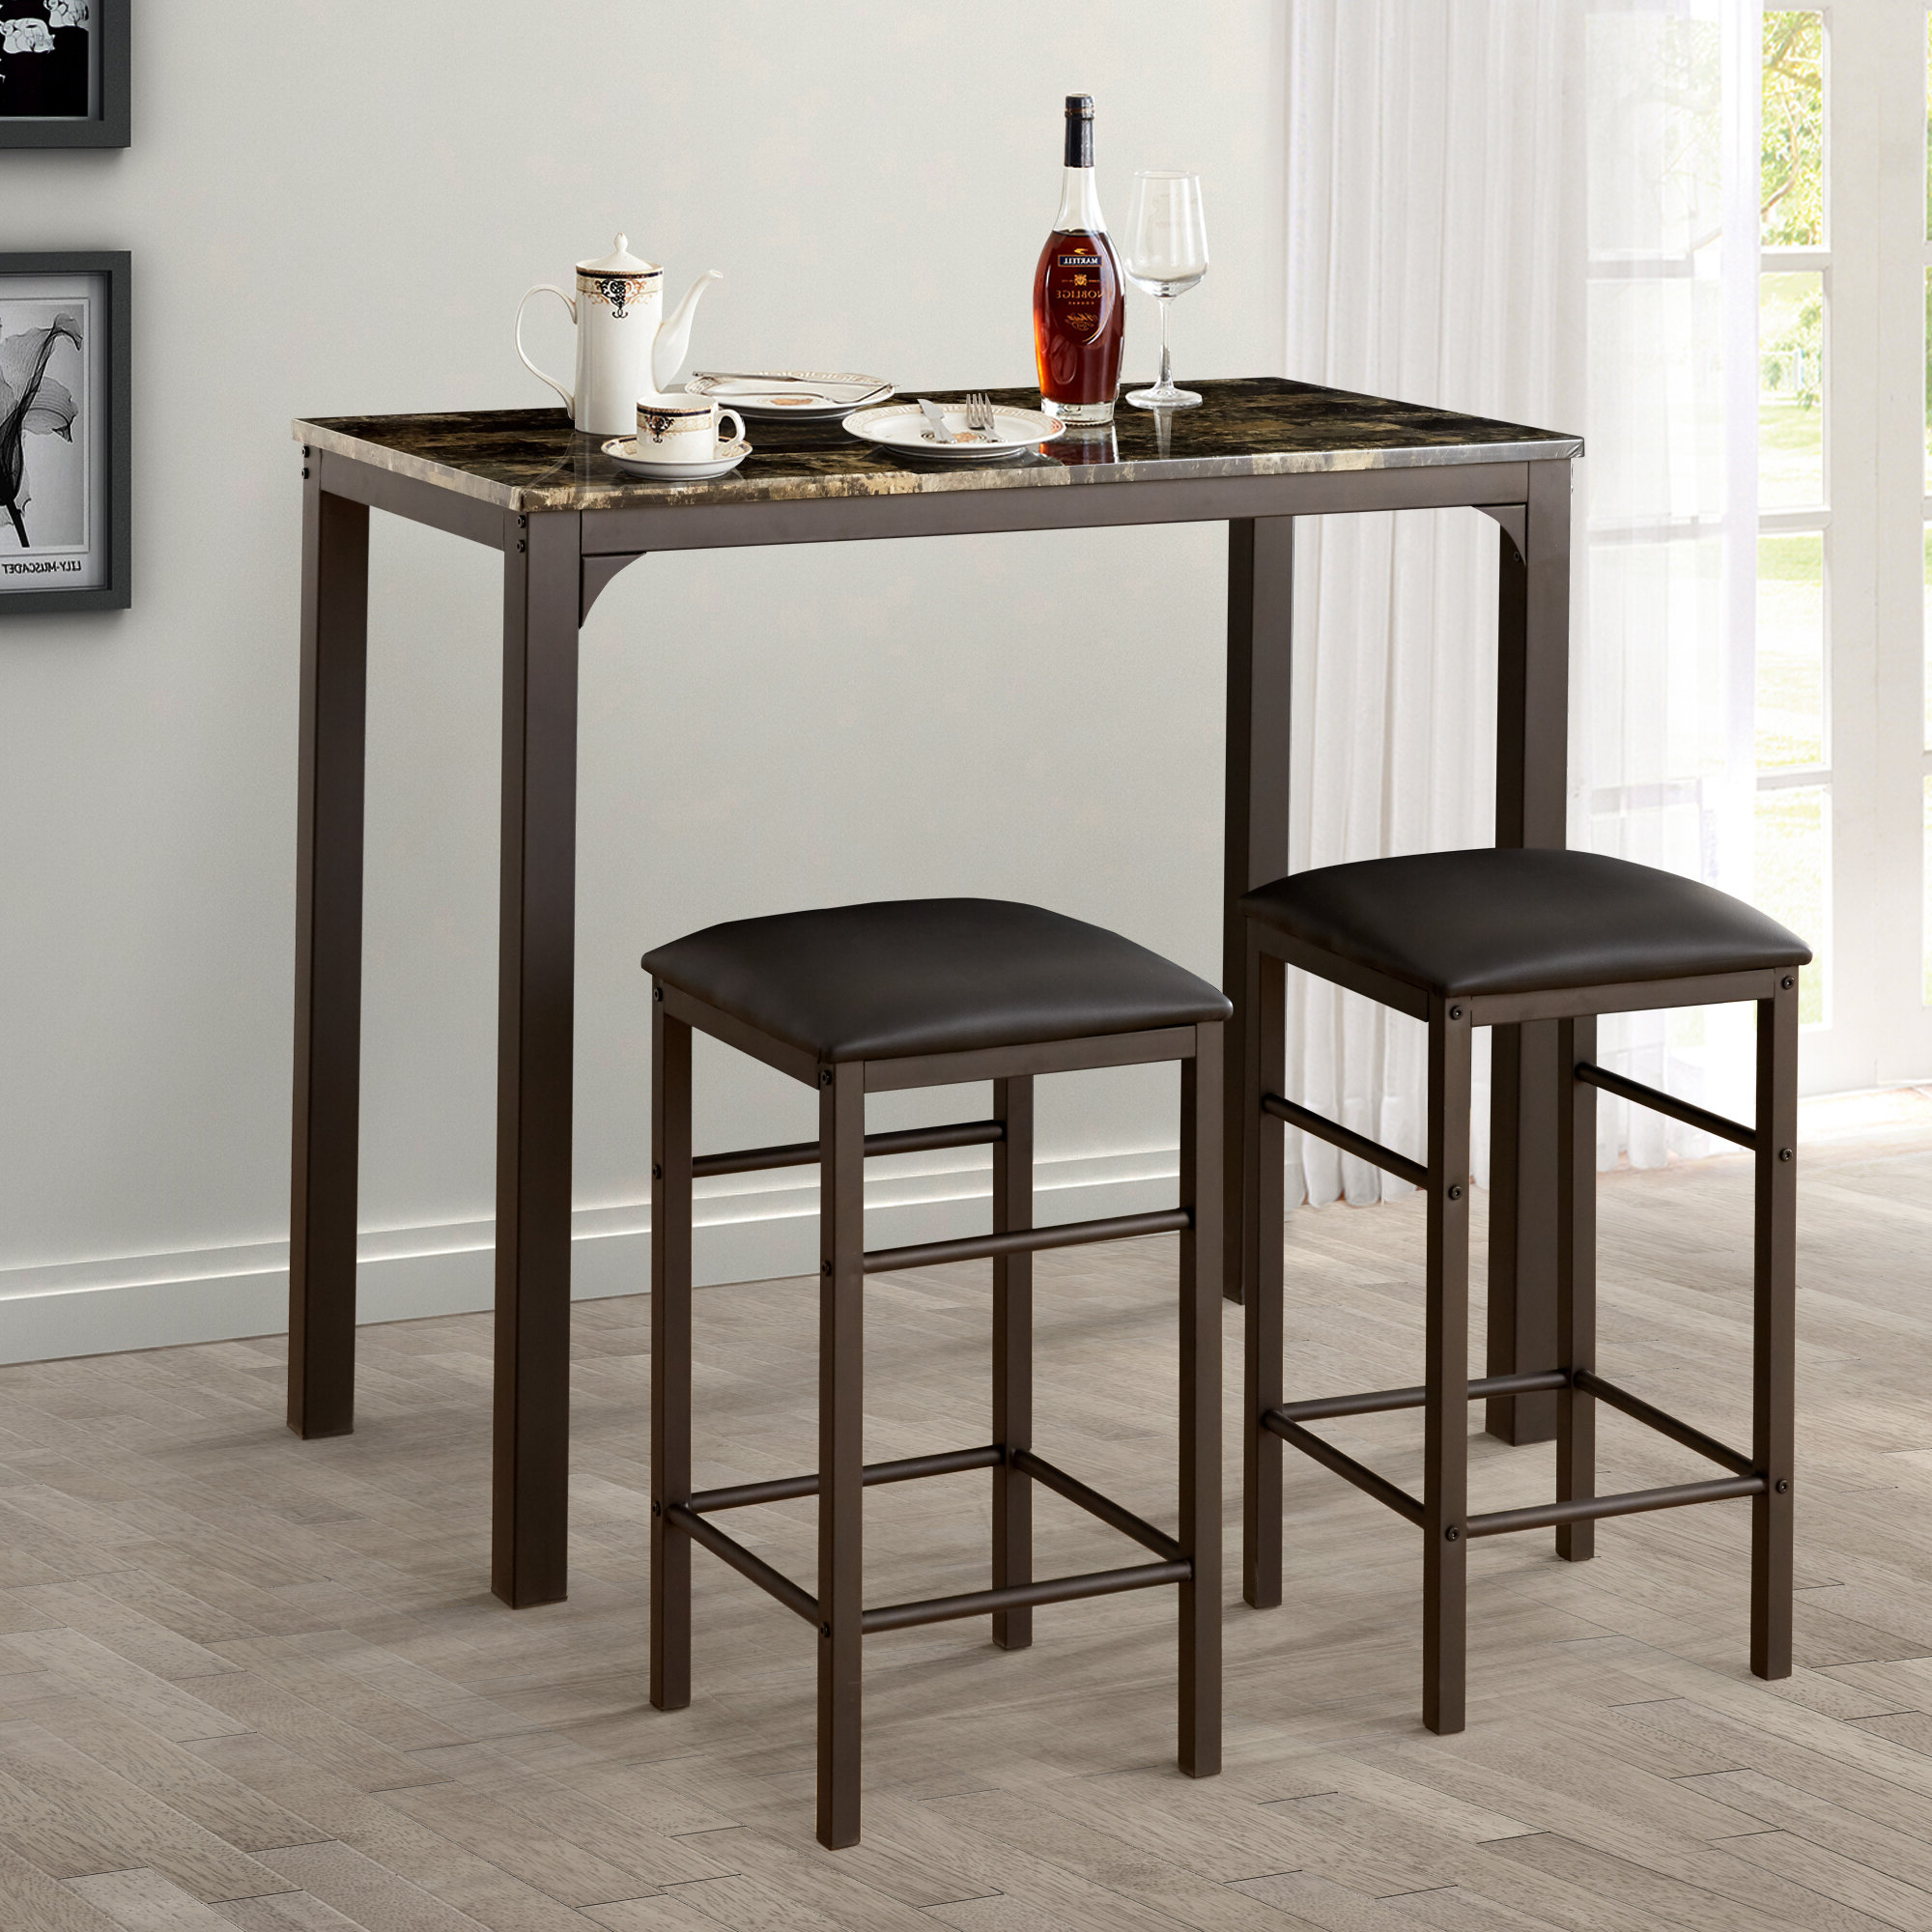 Lillard 3 Piece Breakfast Nook Dining Set With Regard To Famous Lonon 3 Piece Dining Sets (View 16 of 20)